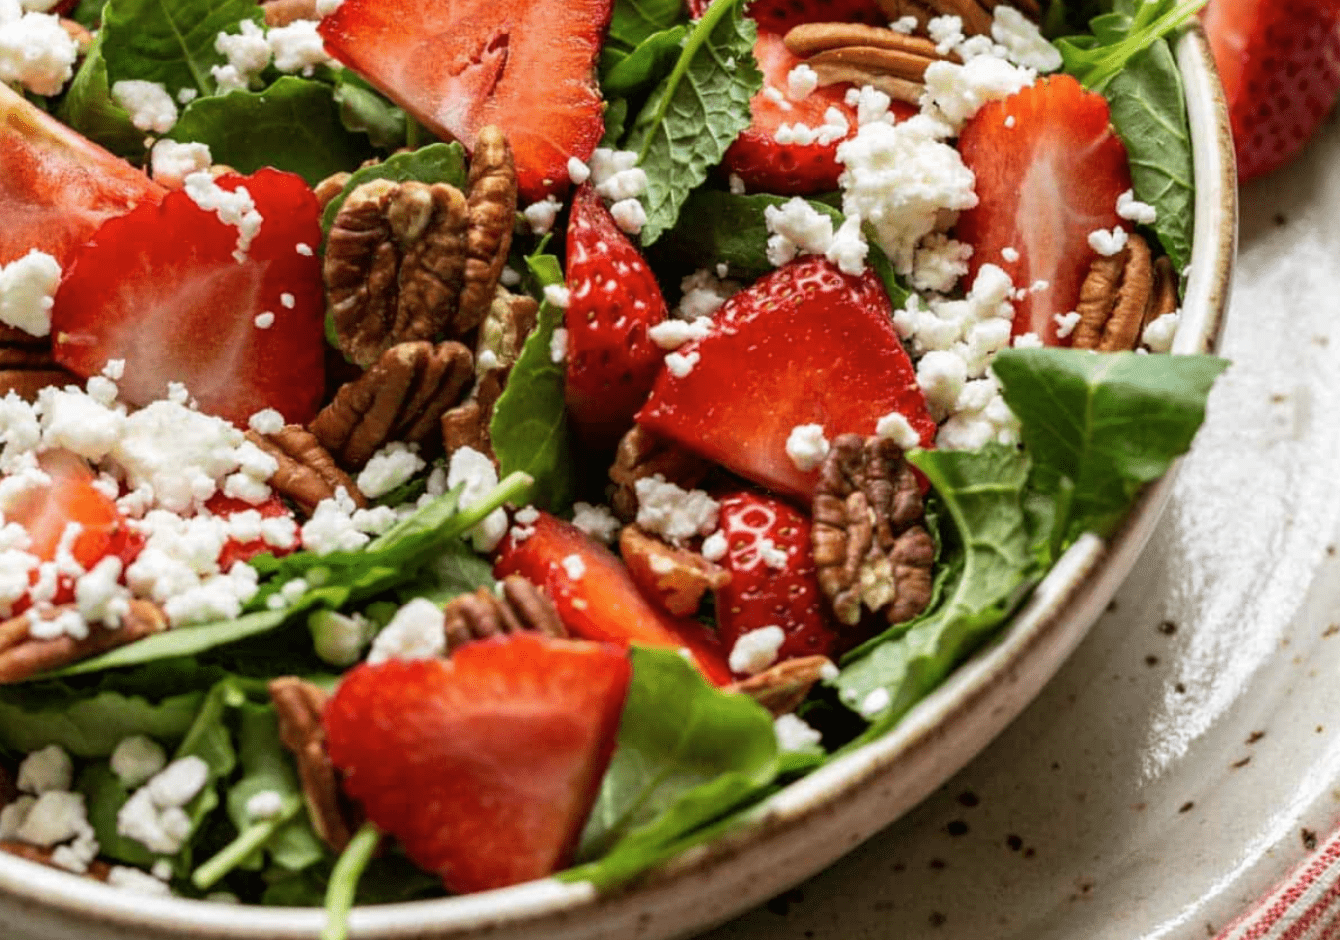 Strawberry and Feta Salad with Pecans